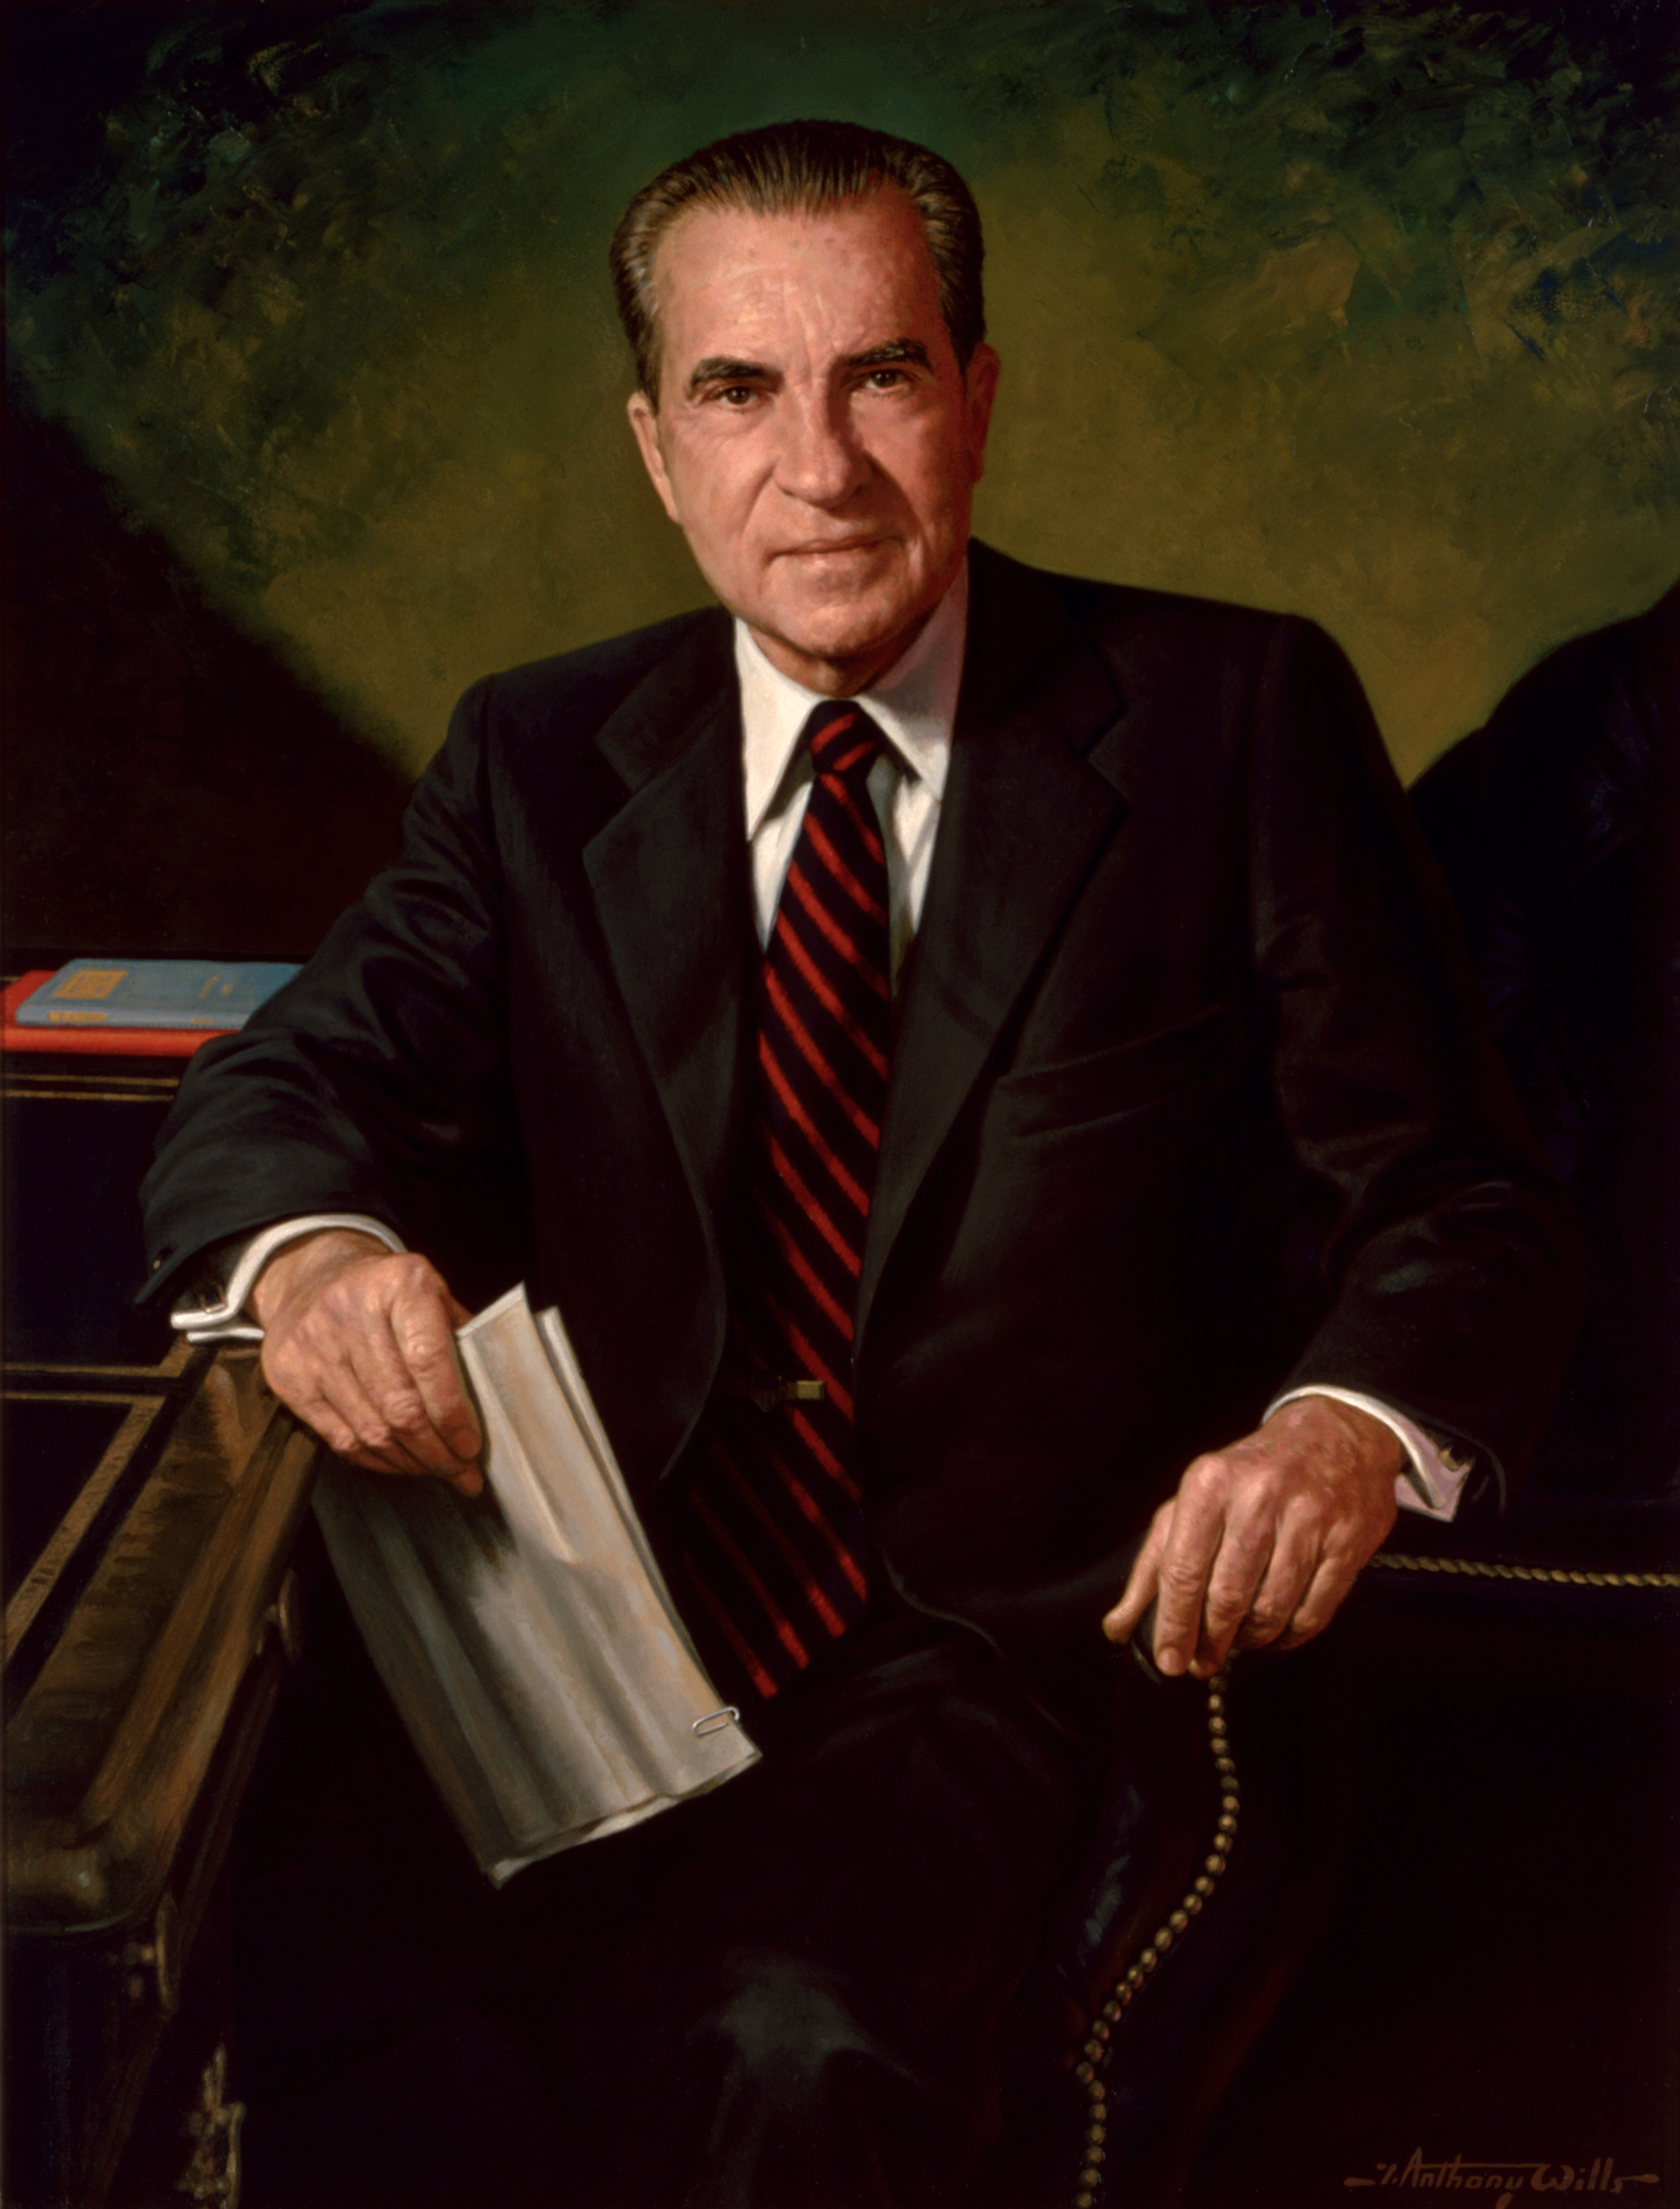 Richard Nixon - Presidential portrait.jpg